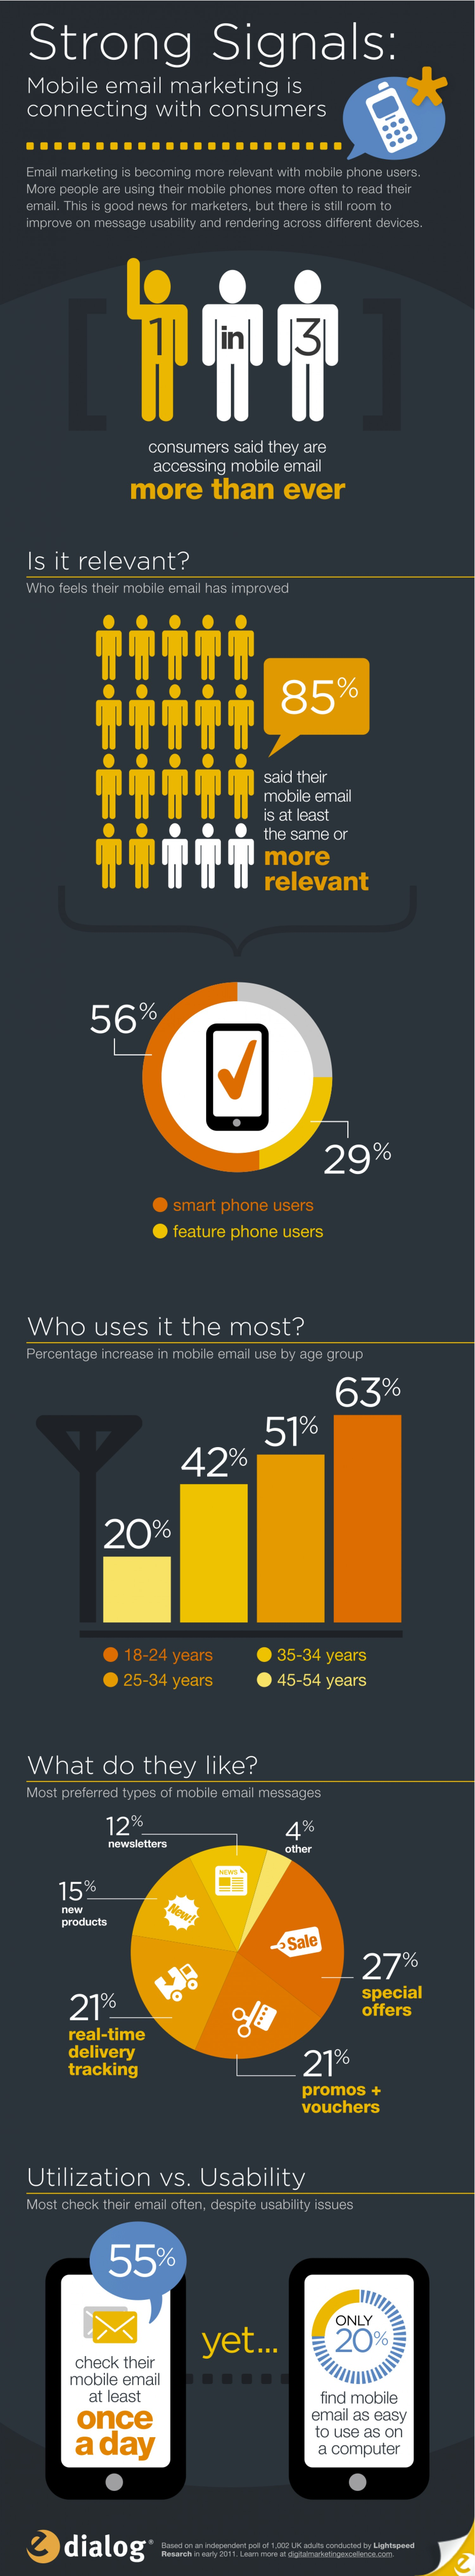 Rise in mobile email marketing